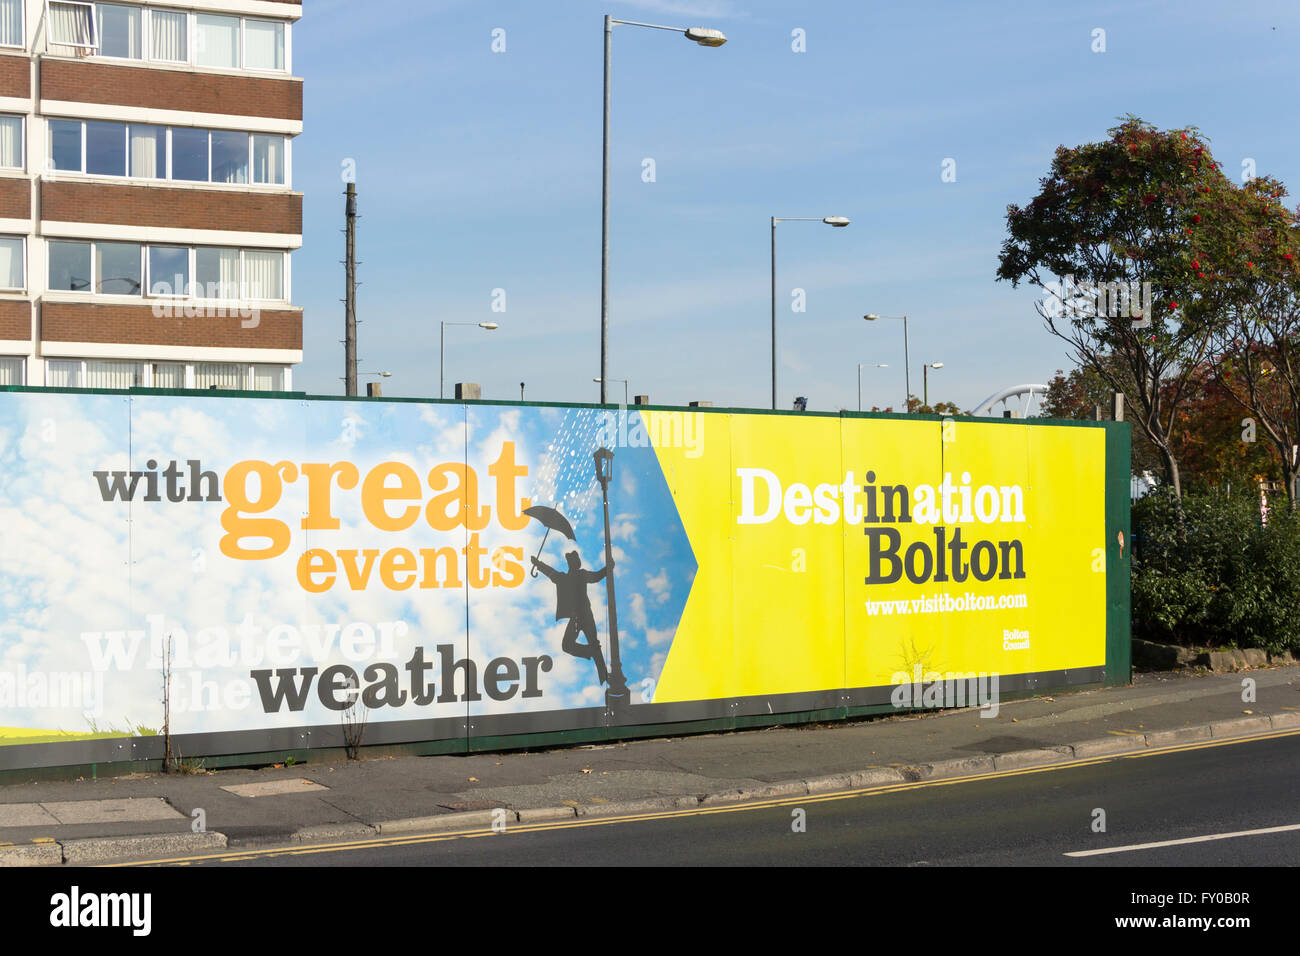 Former site of Odeon cinema in Bolton town centre, surrounded by hoarding promoting the town to visitors. - Stock Image